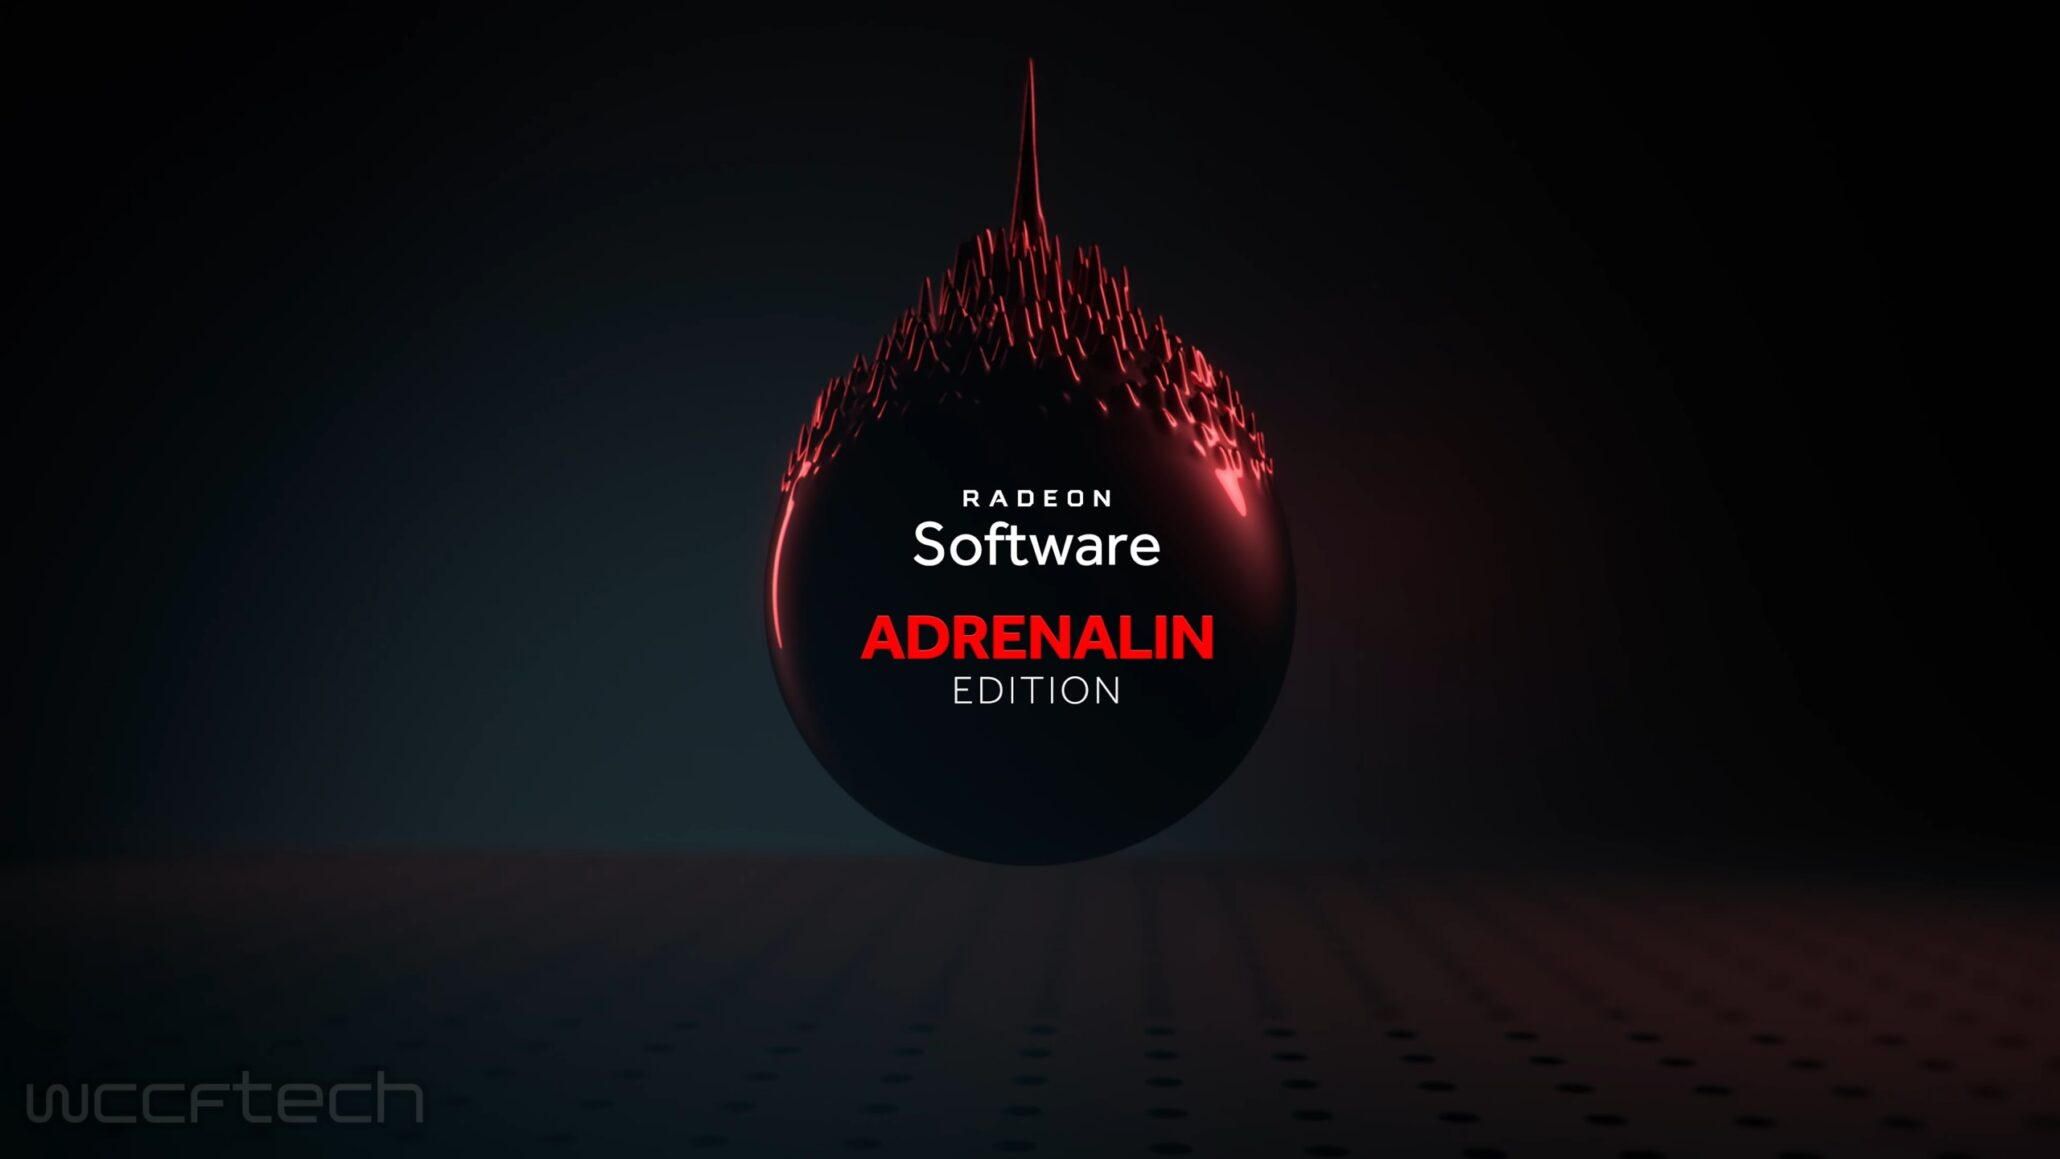 AMD's Latest Radeon Adrenalin 19 7 1 Driver Offers Image